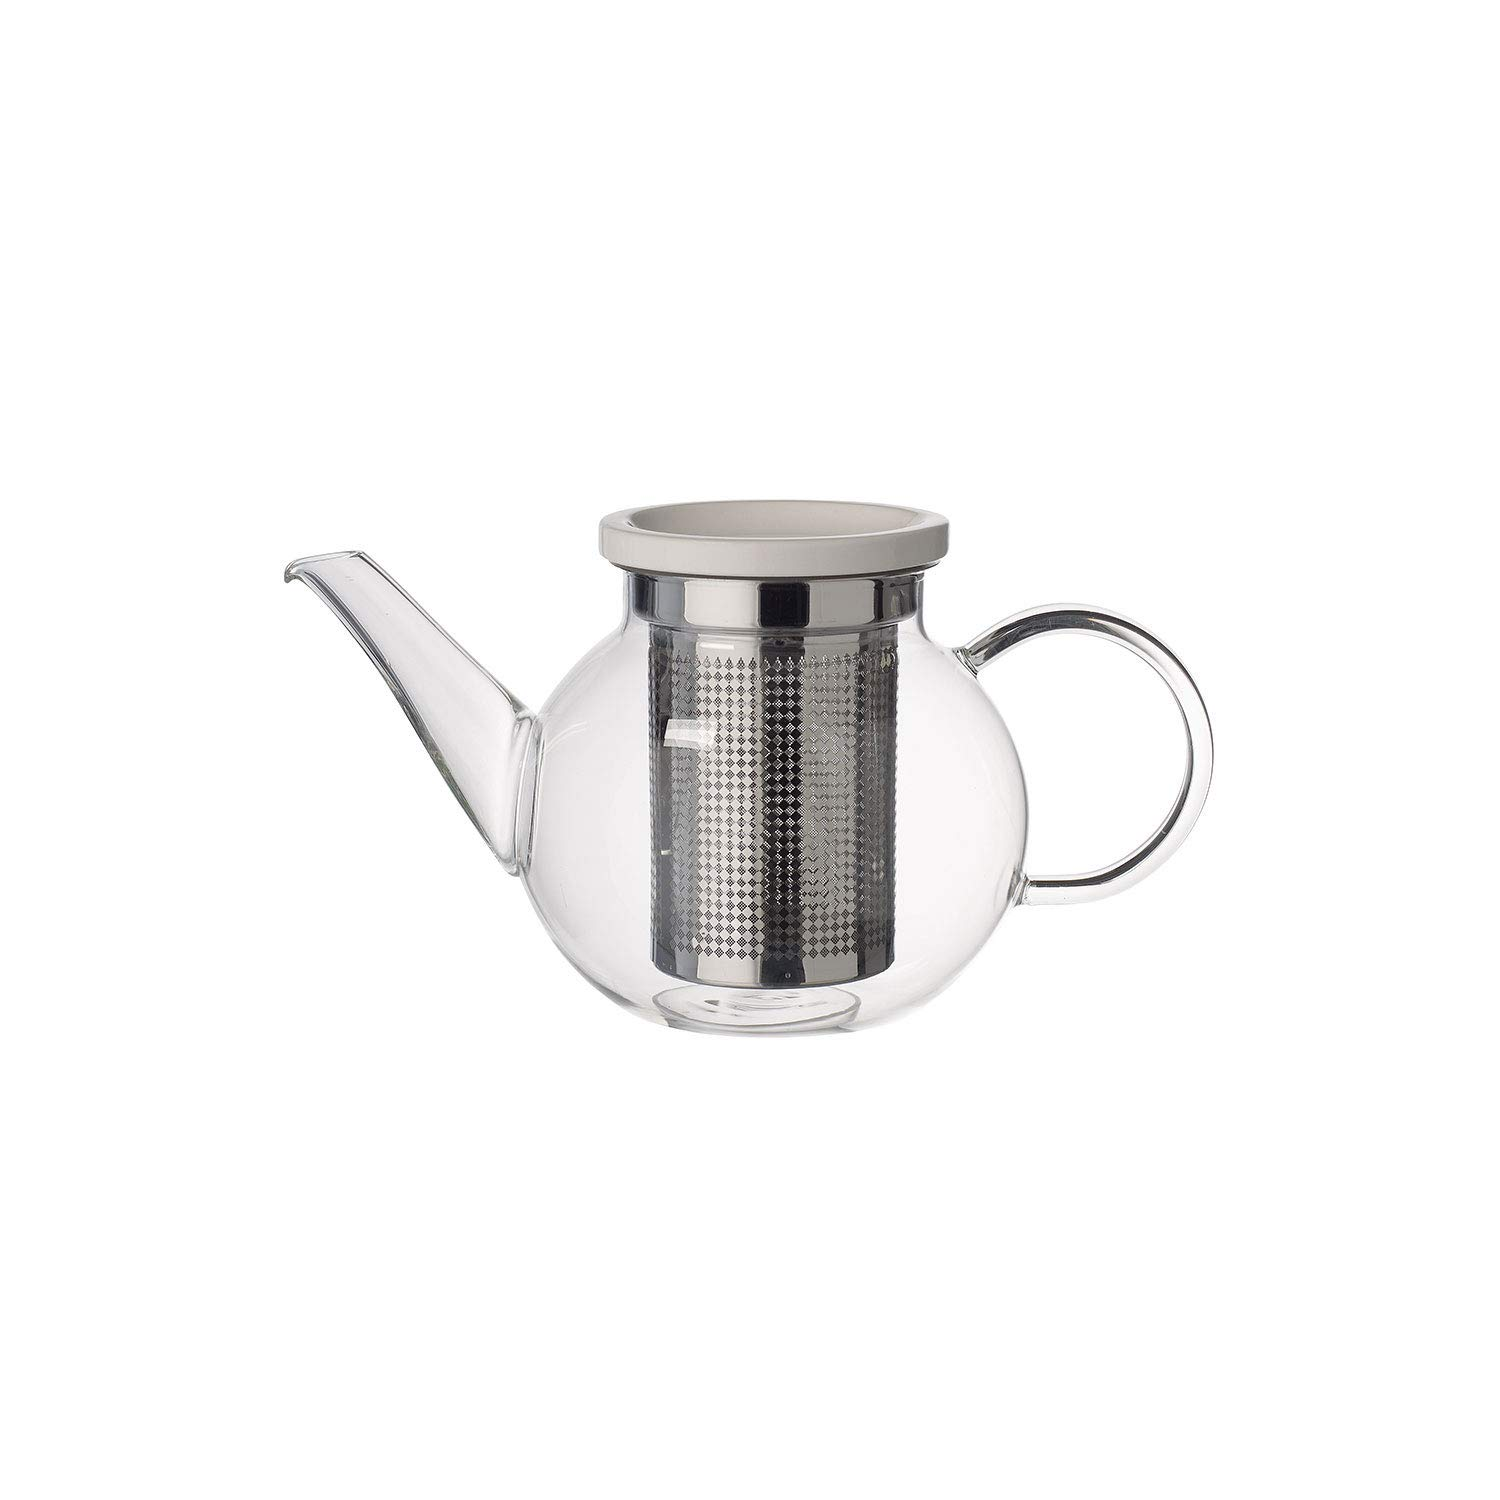 Villeroy & Boch 1172437270 Artesano Hot Beverages Small Teapot, Clear